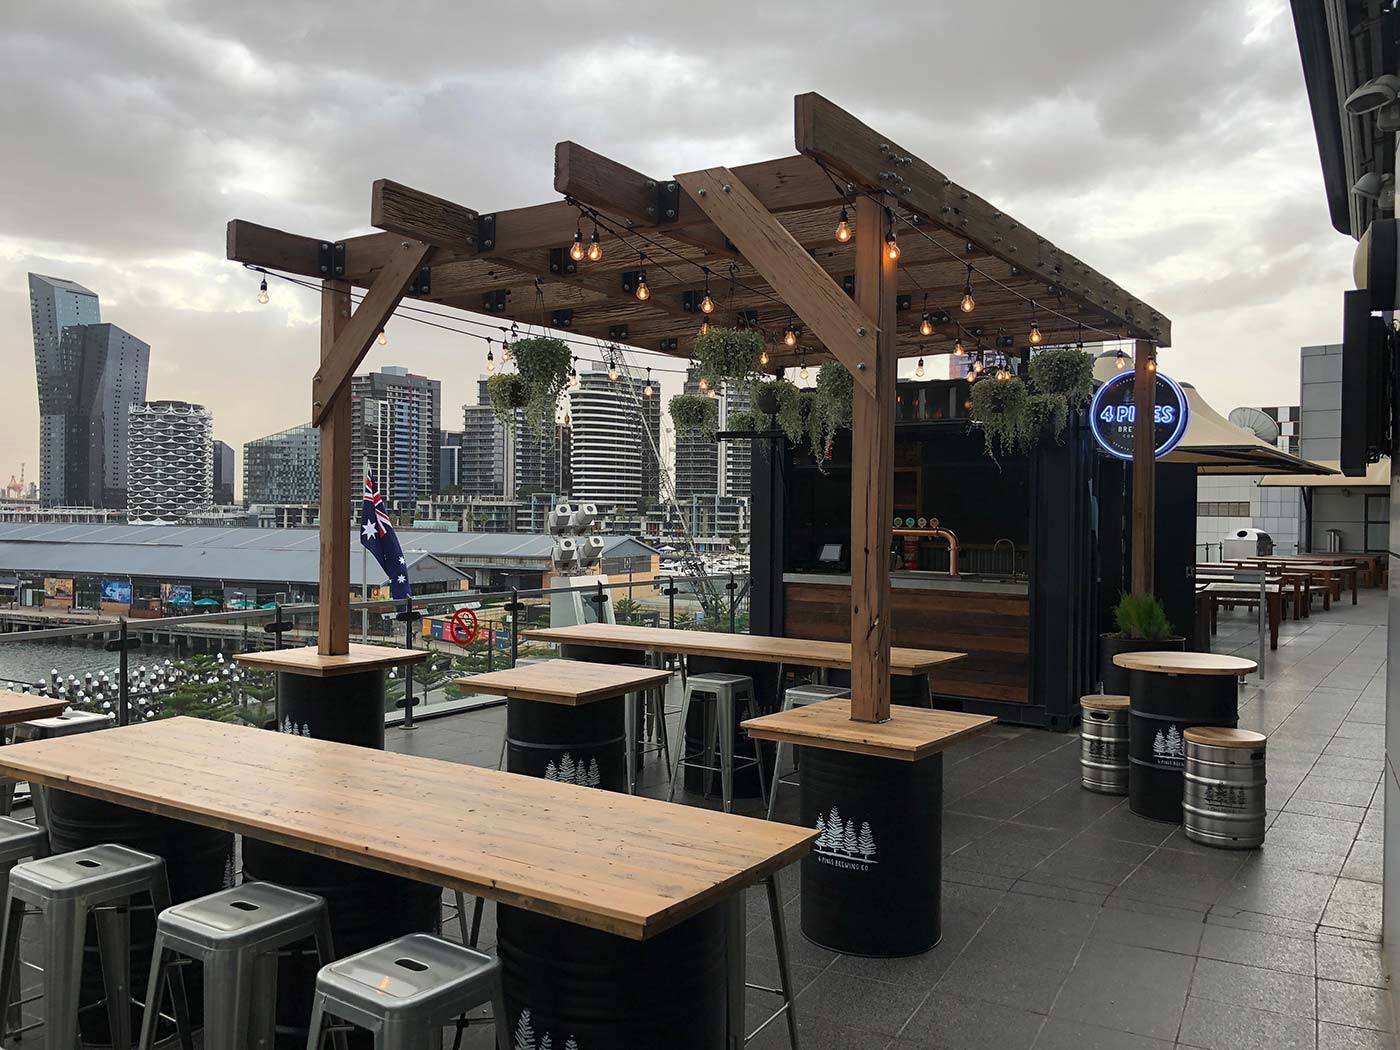 4-Pines-10ft-Shipping-Container-Bar-Conversion-4108